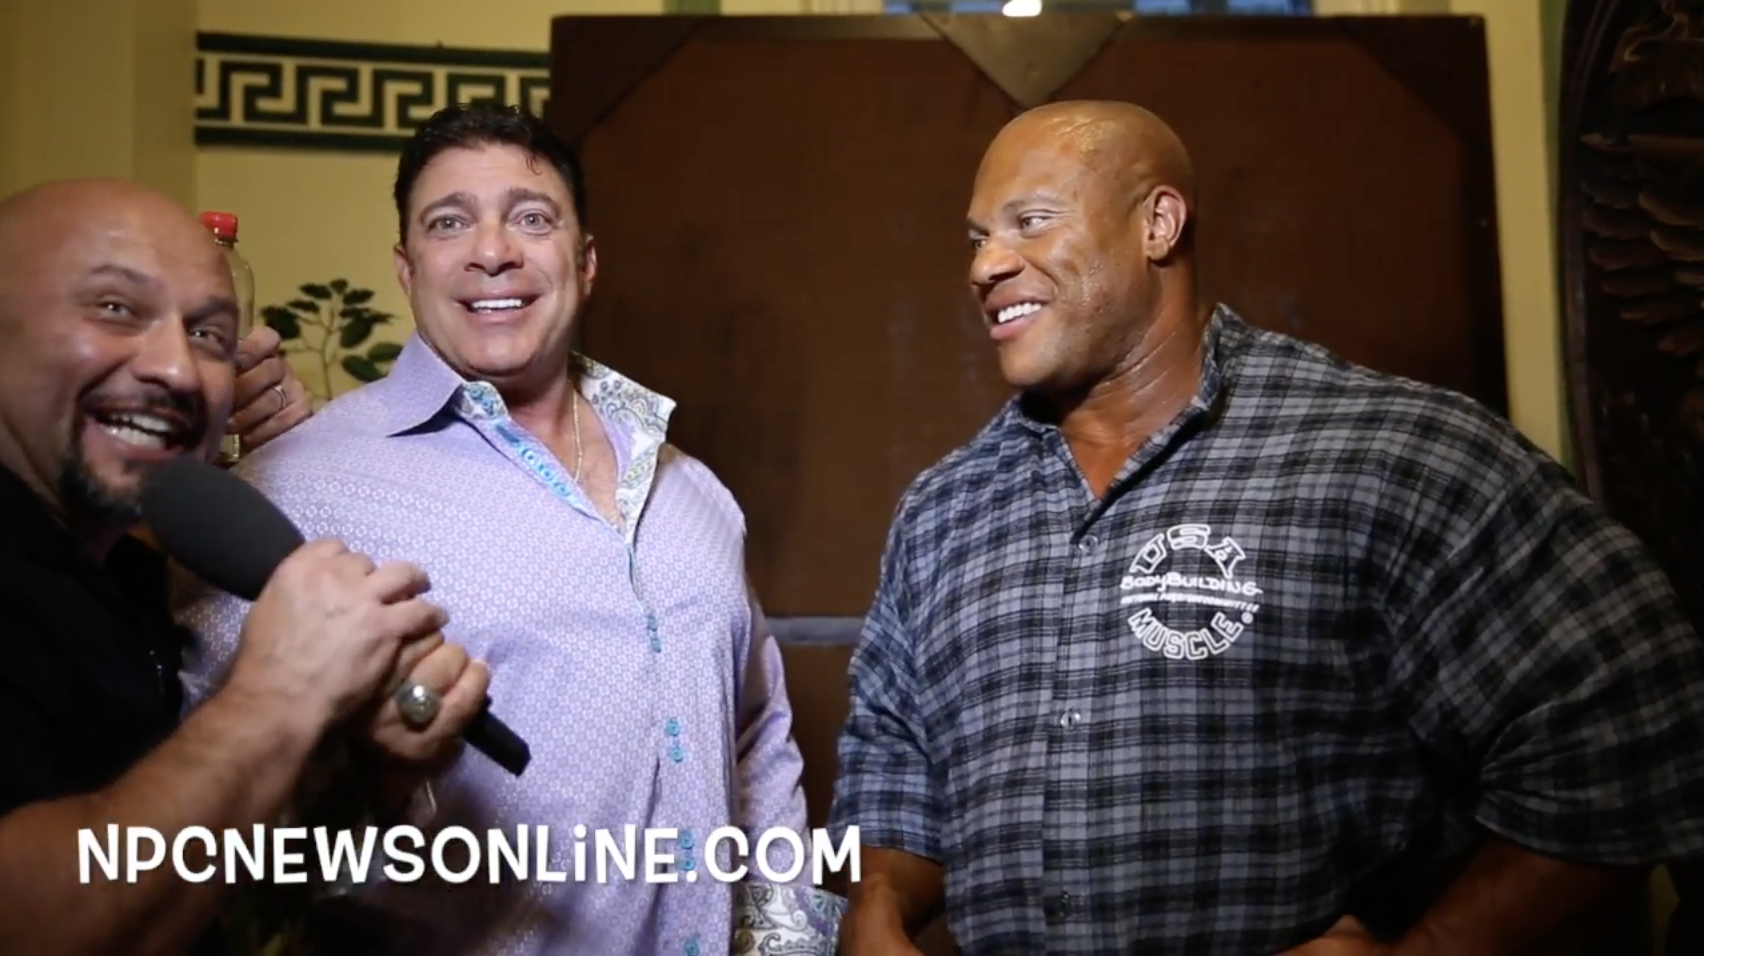 NPC NEWS ONLINE VIDEO BLOOPERS PART 1: Starring 4 IFBB Olympia Champions & More.